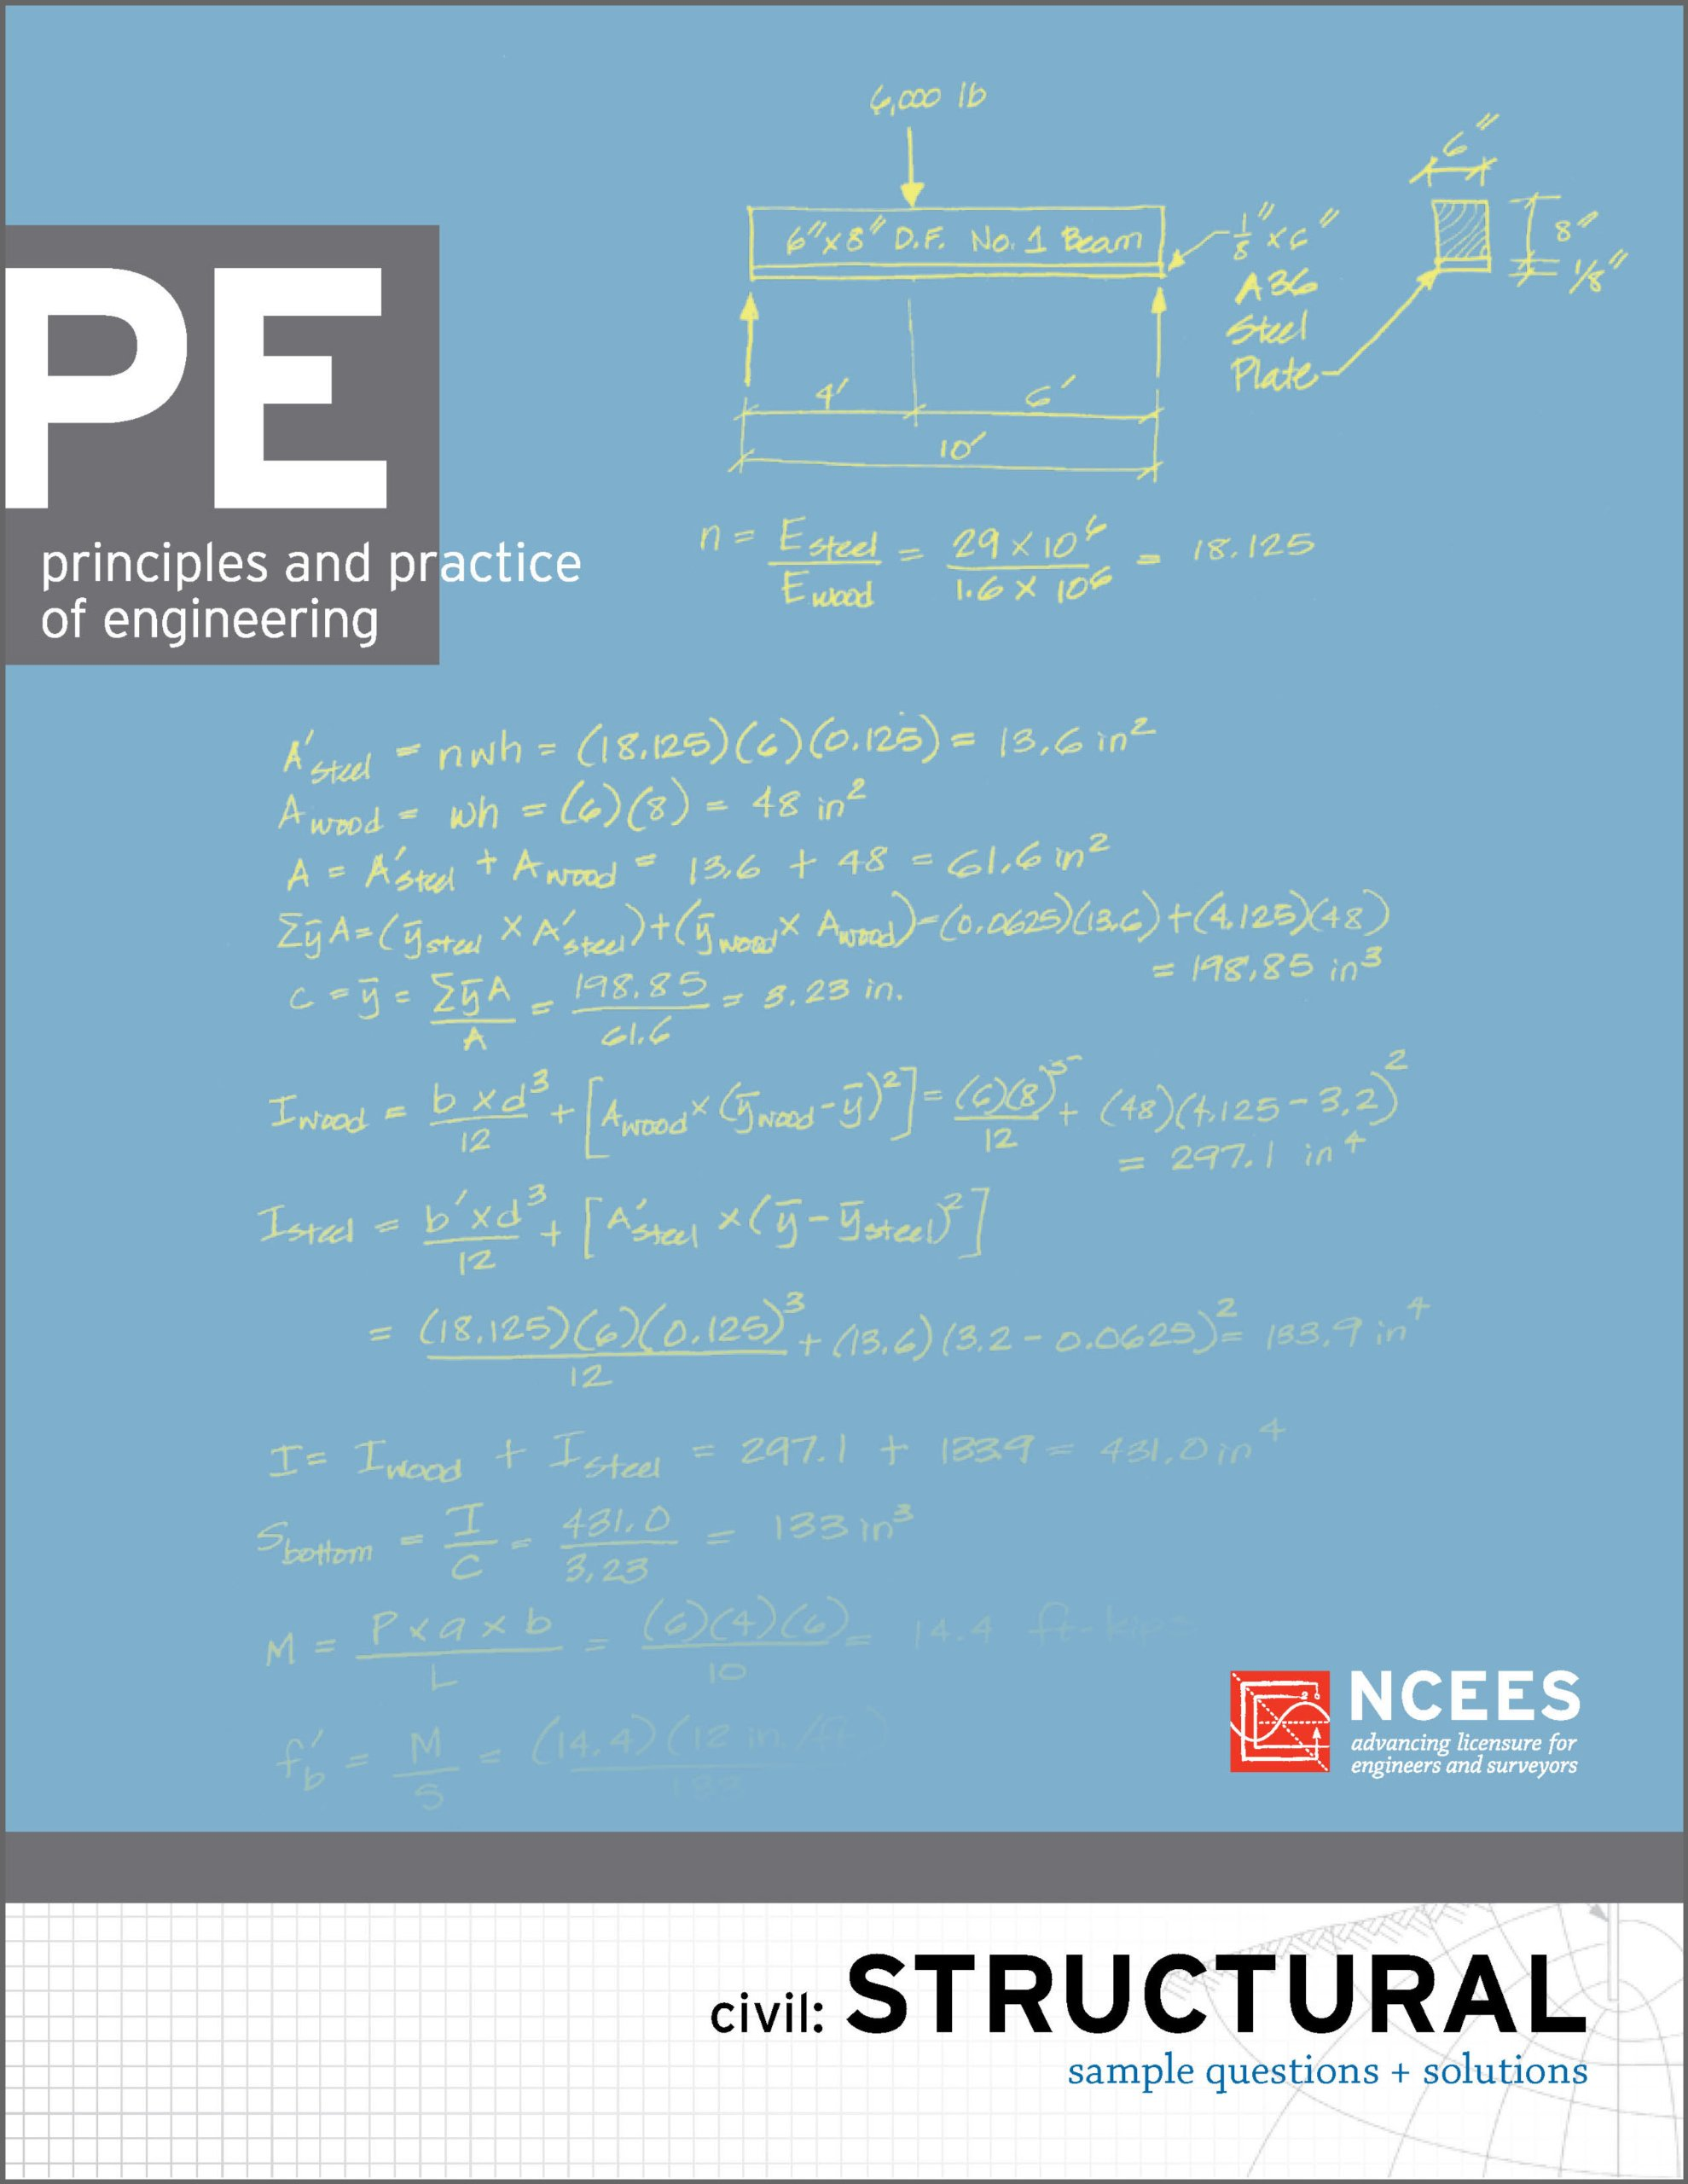 PE Civil: Structural Sample Questions and Solutions: NCEES: 9781932613636:  Amazon.com: Books